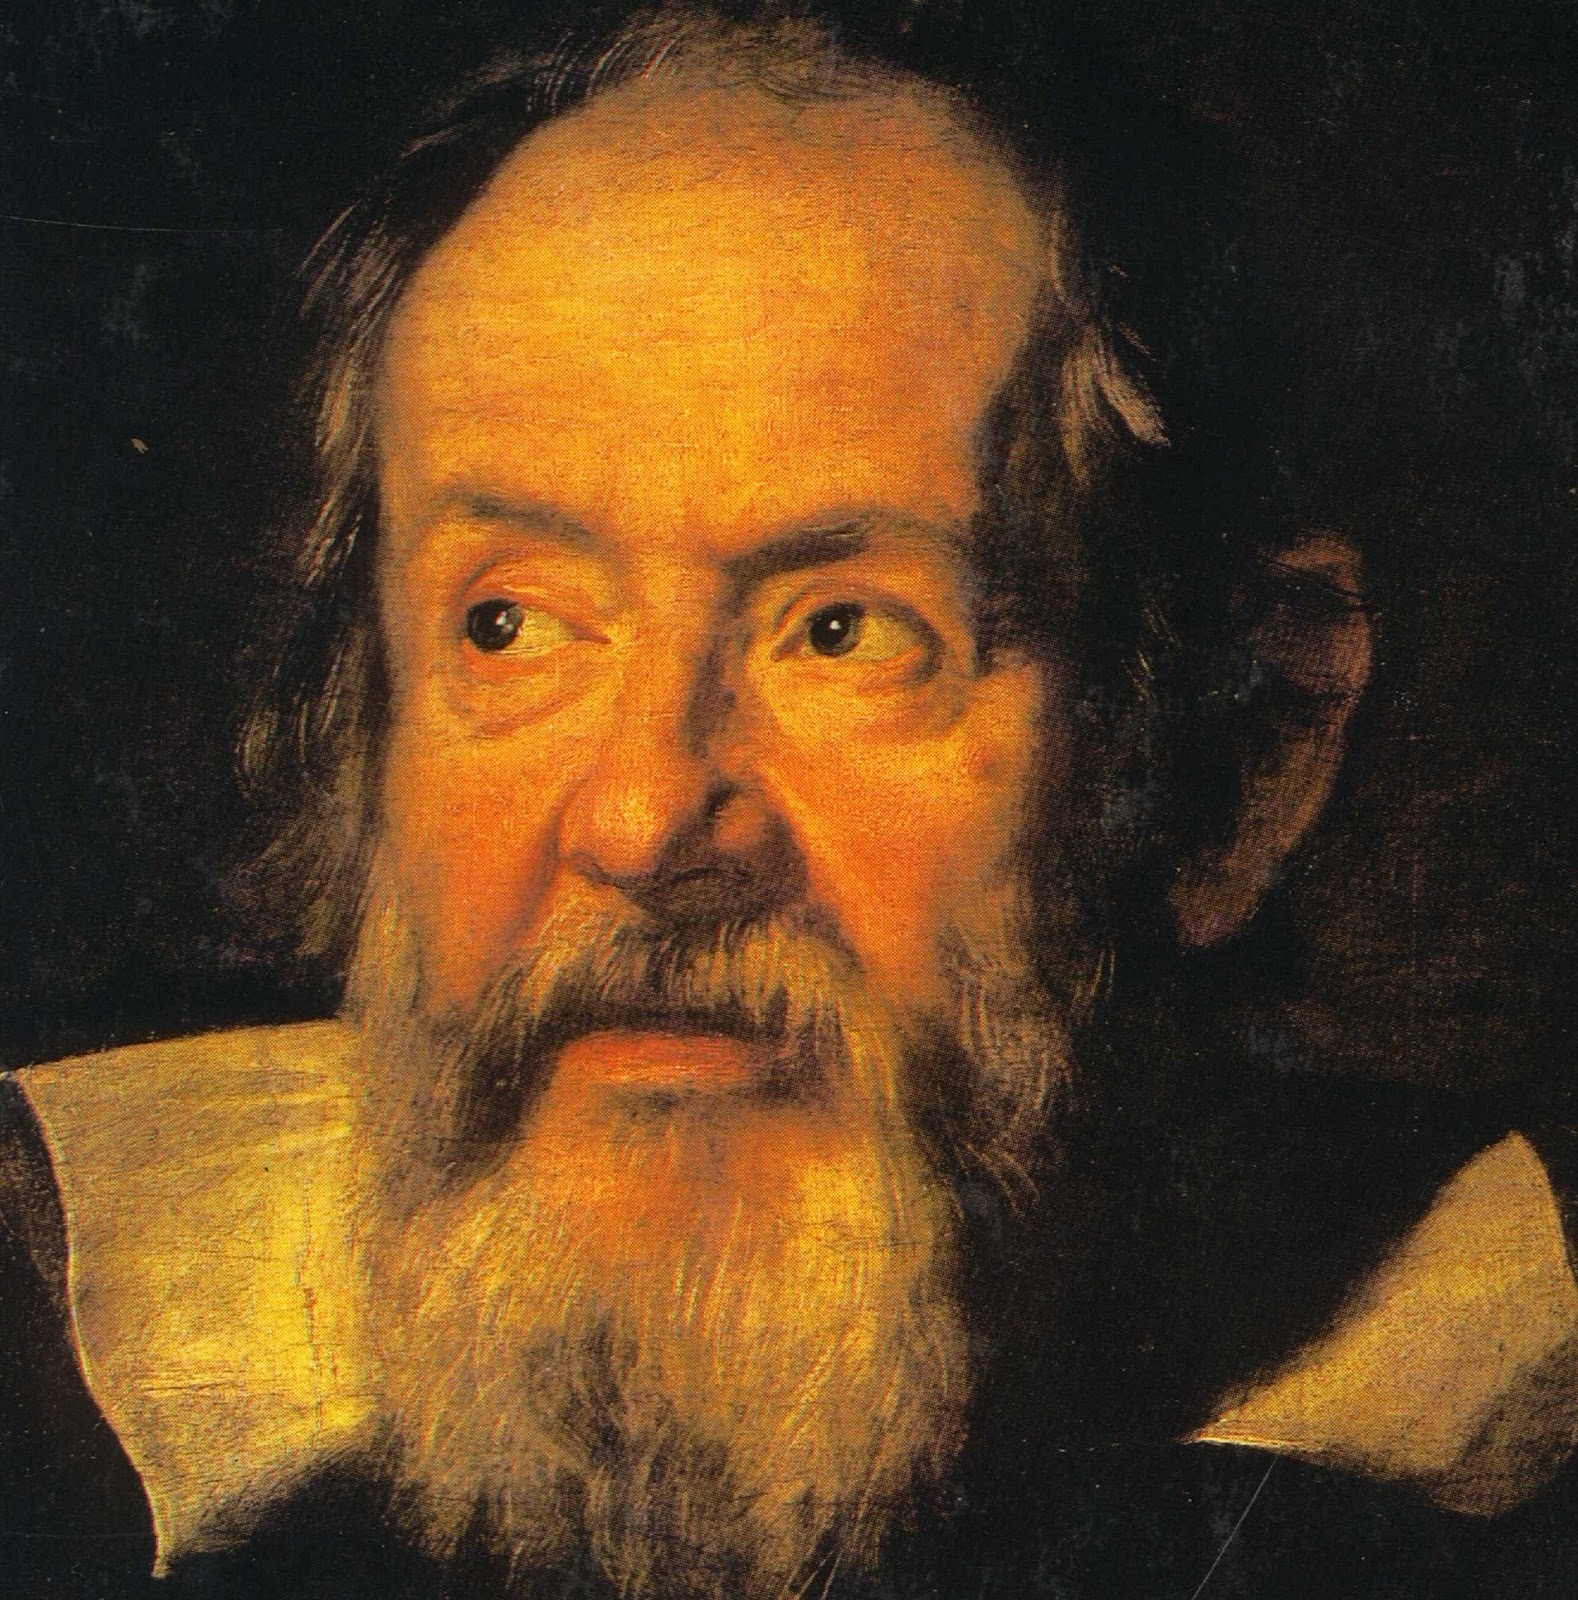 Galileo Galilei Biography Worksheet – Free Printables for Science for Kids